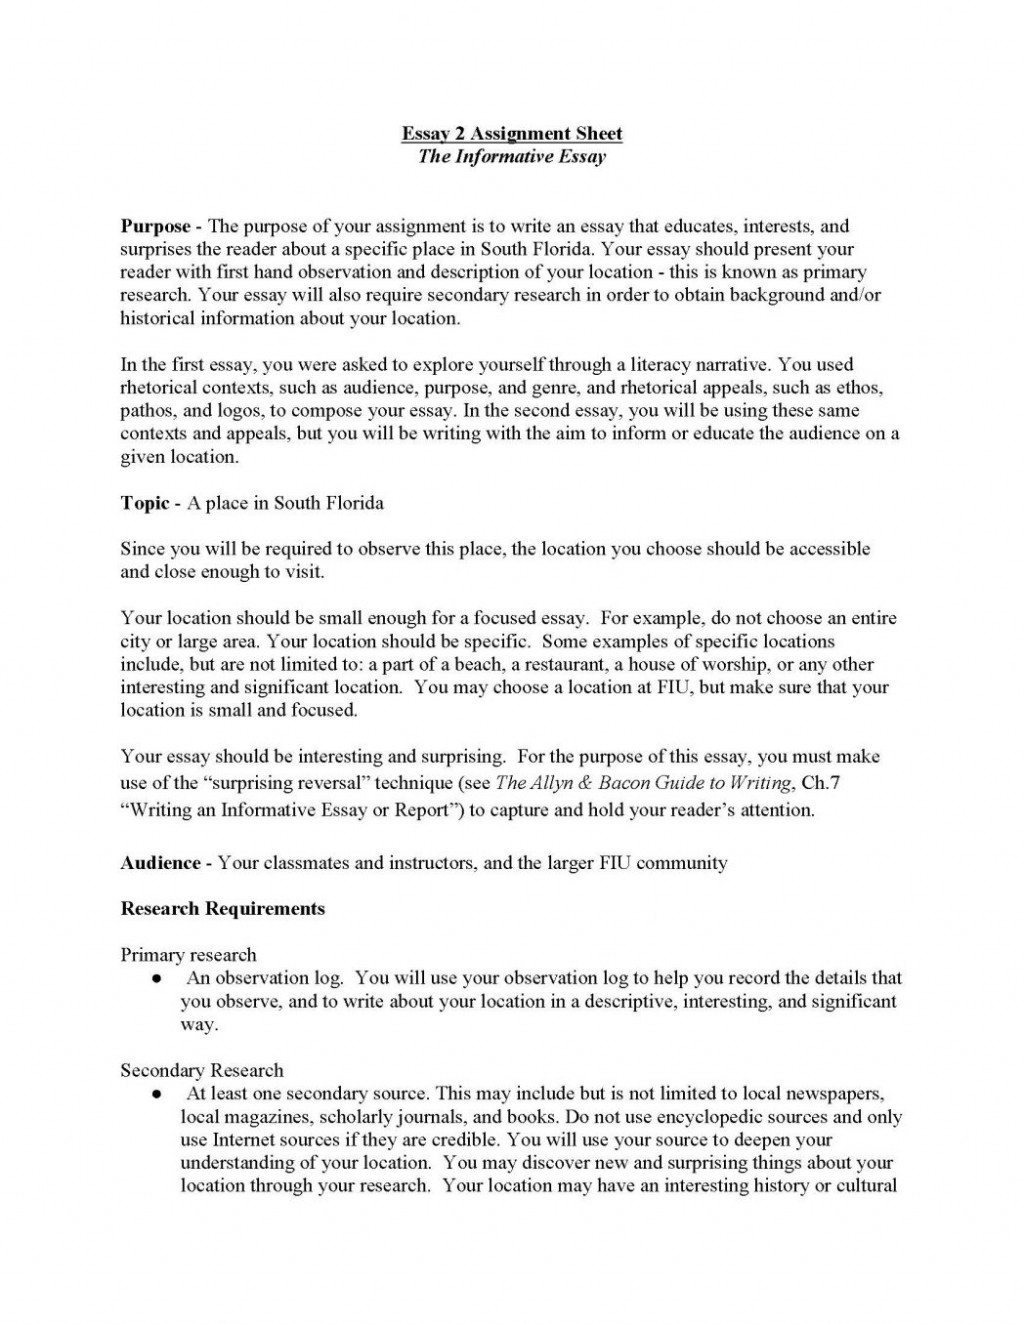 014 Essay Example How To Write This I Believe Synthesis Topic Ideas Informative Research Topics Samples Unit Assignment P Good Template Fantastic A What On Things Large